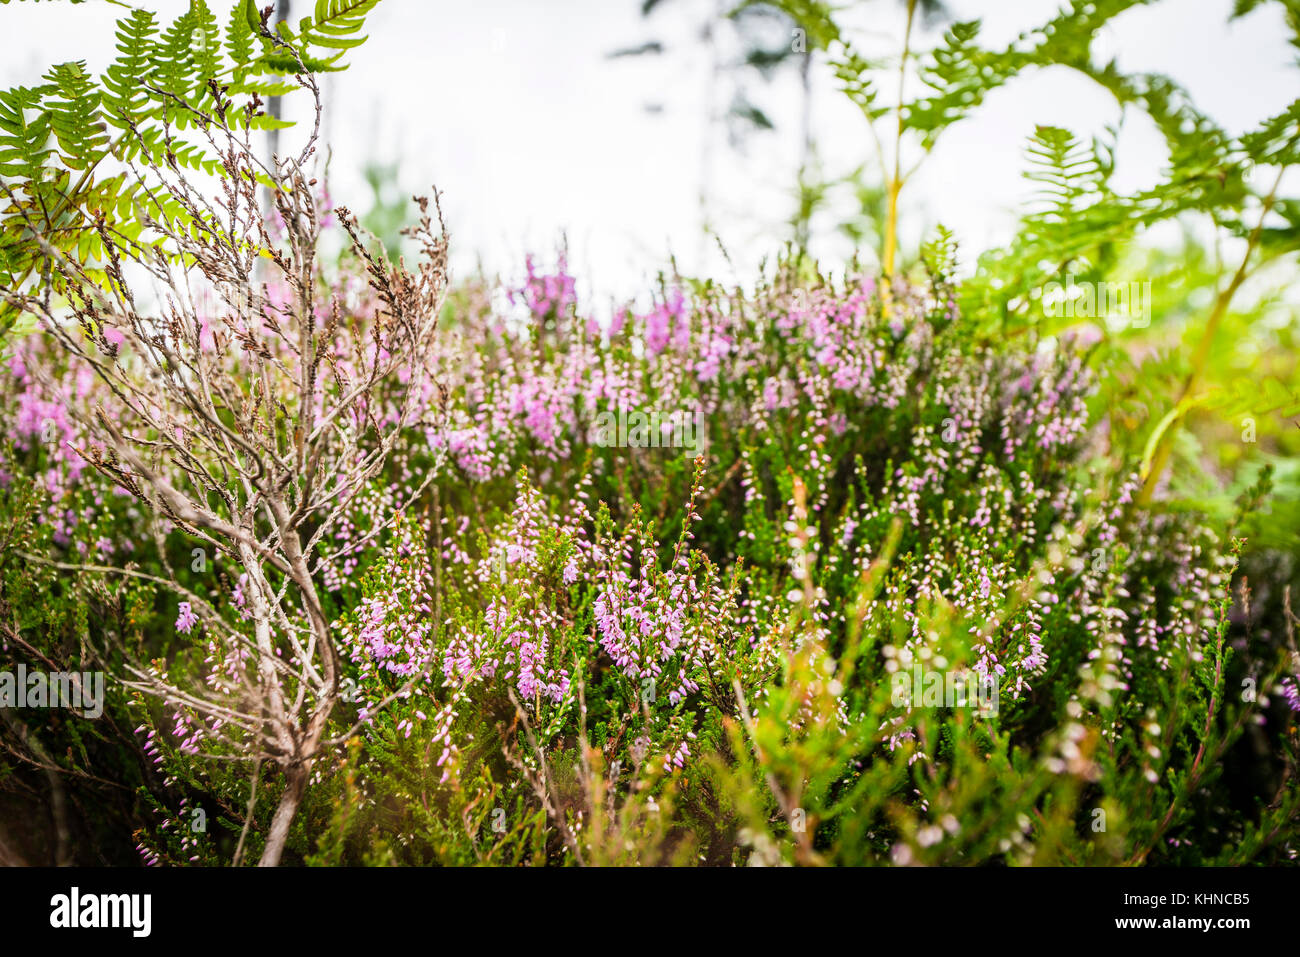 Heather in blooming violet colors on a field in the summer - Stock Image